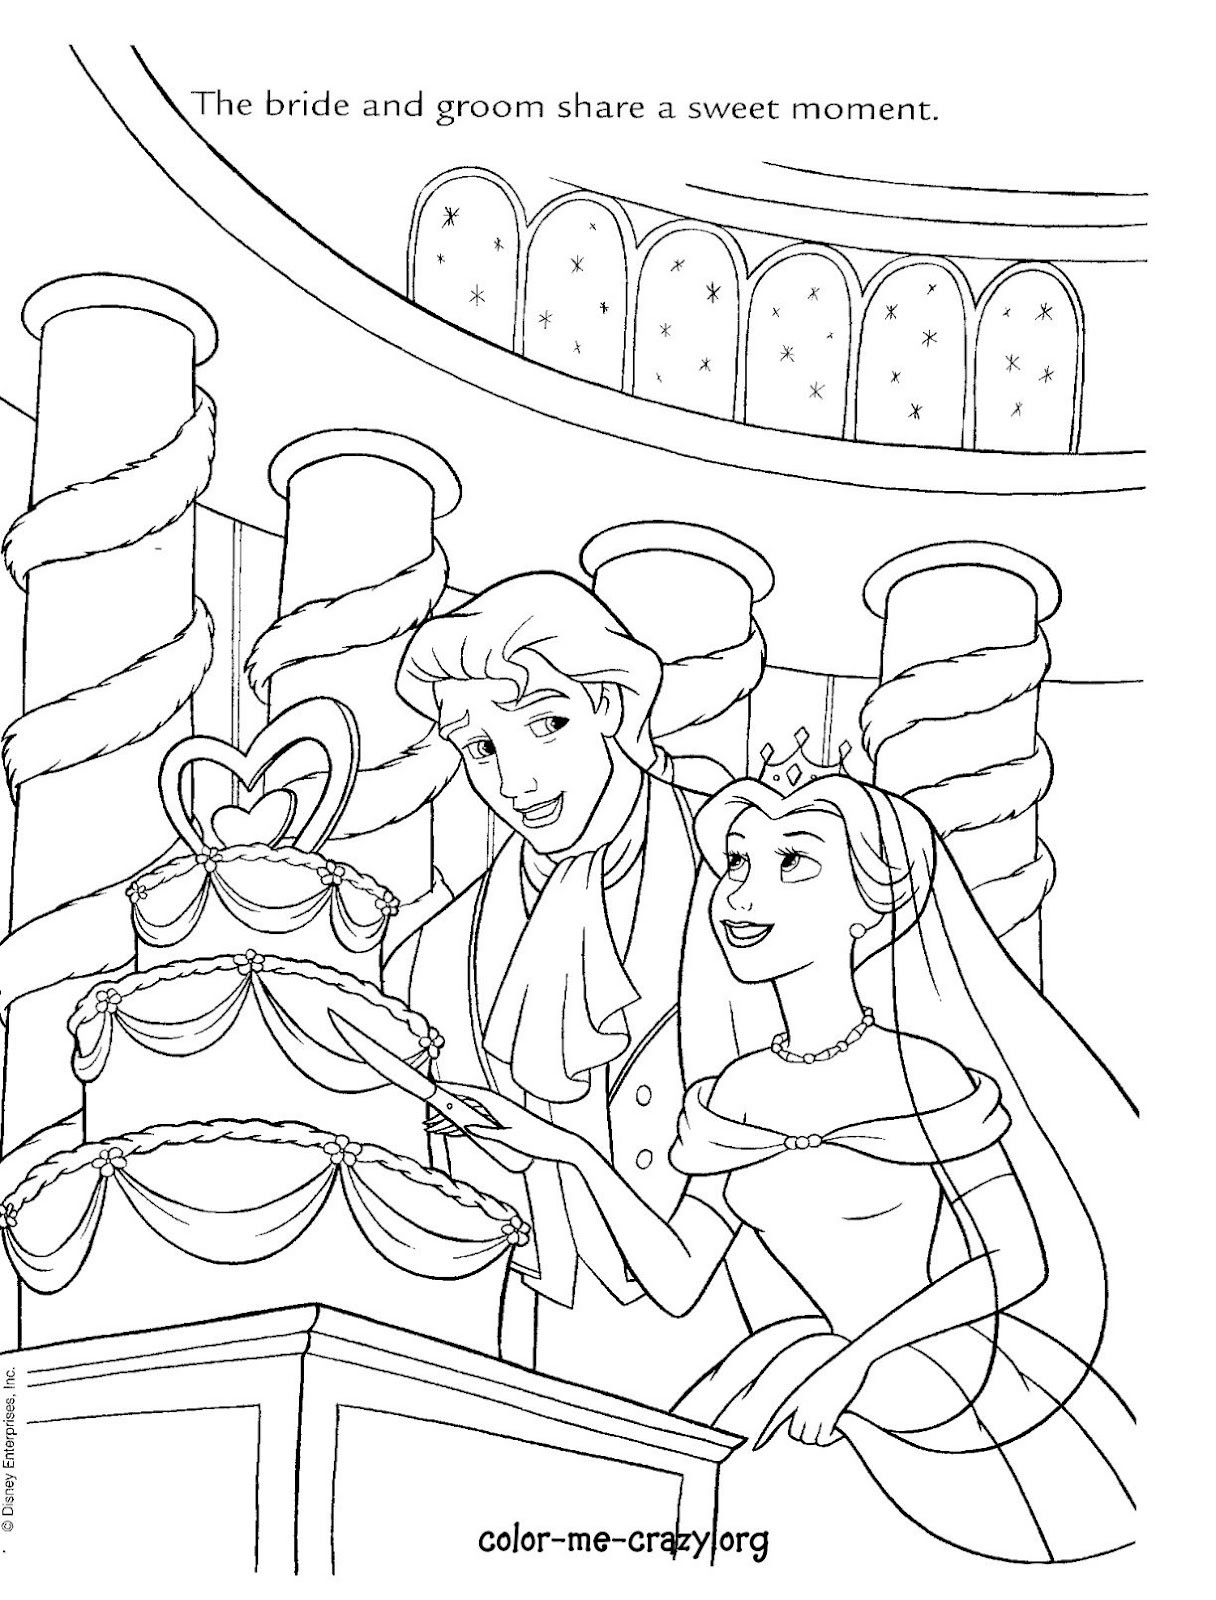 Cinderella Wedding Coloring Pages At Getdrawings Com Free For